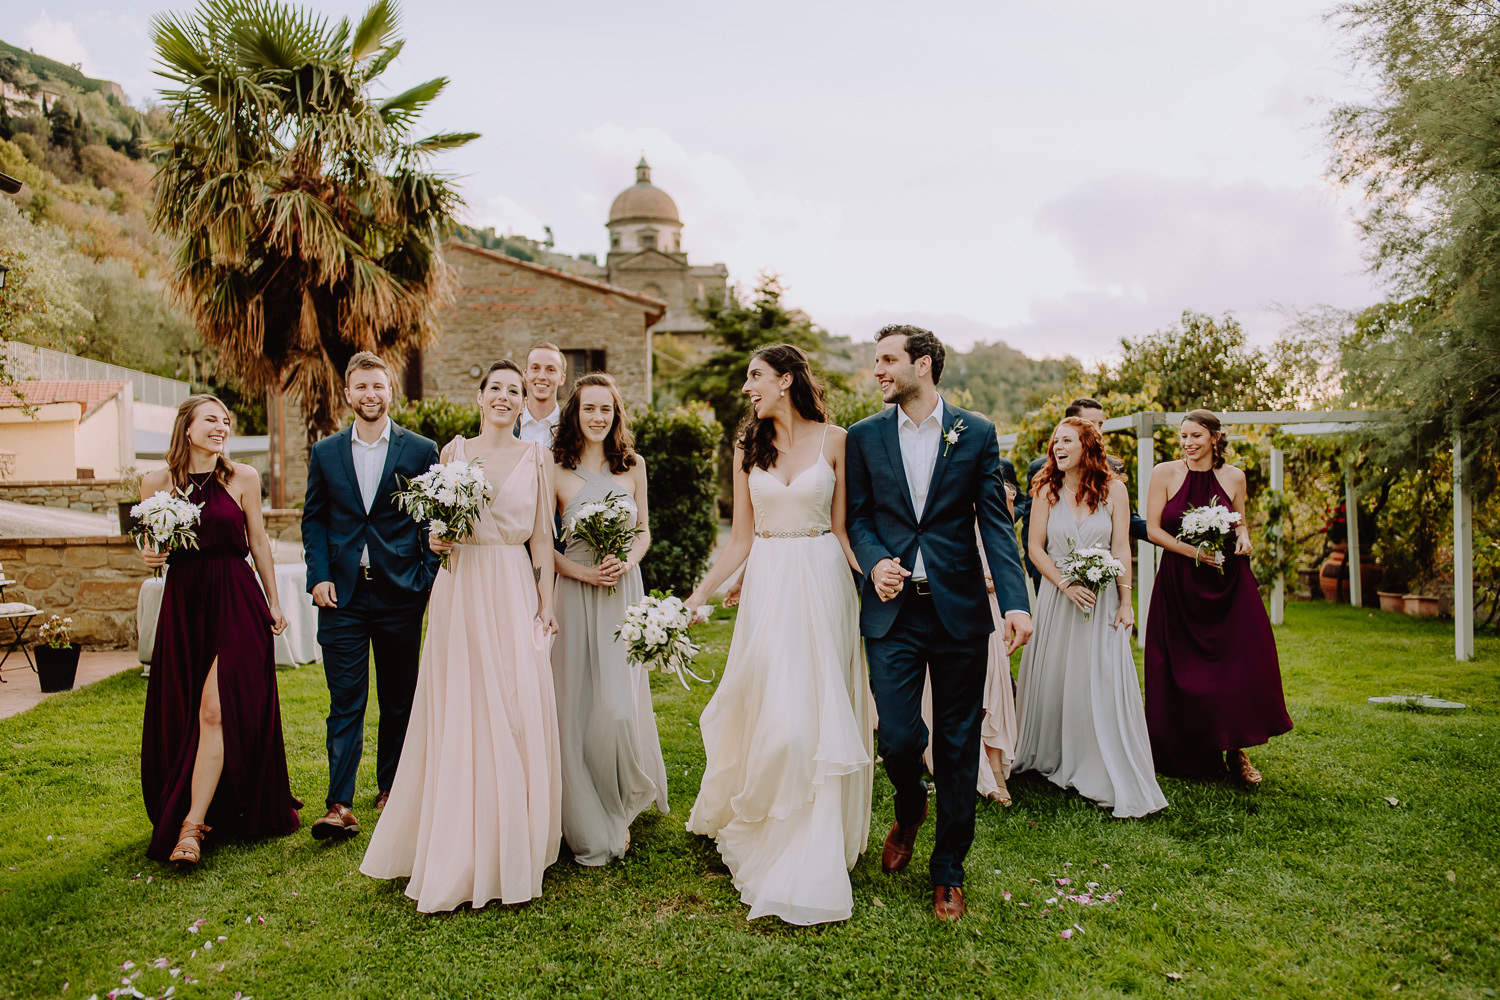 Unbria wedding photographer bridal party